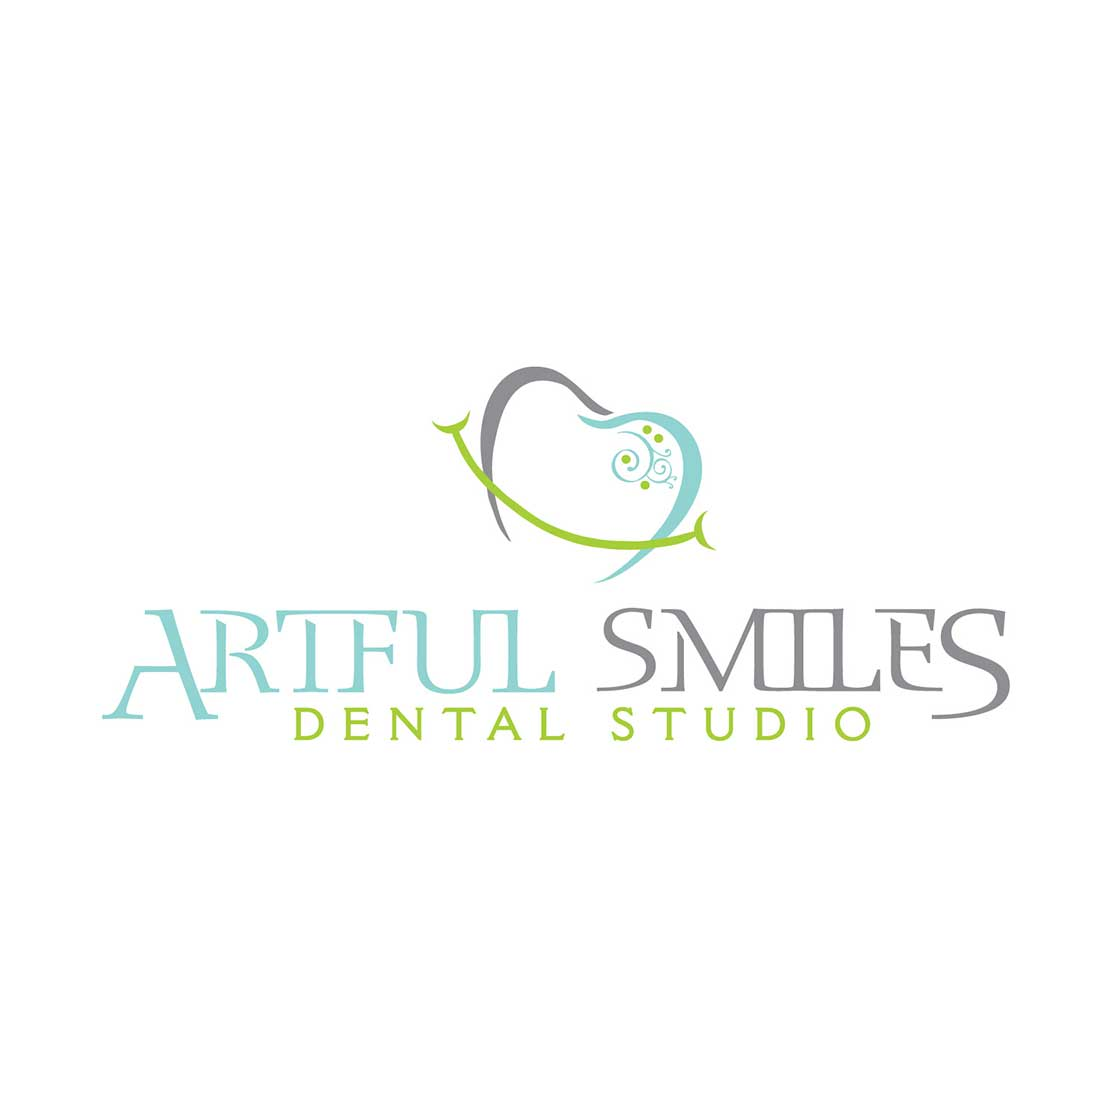 crowdspring dental llogo design by melody